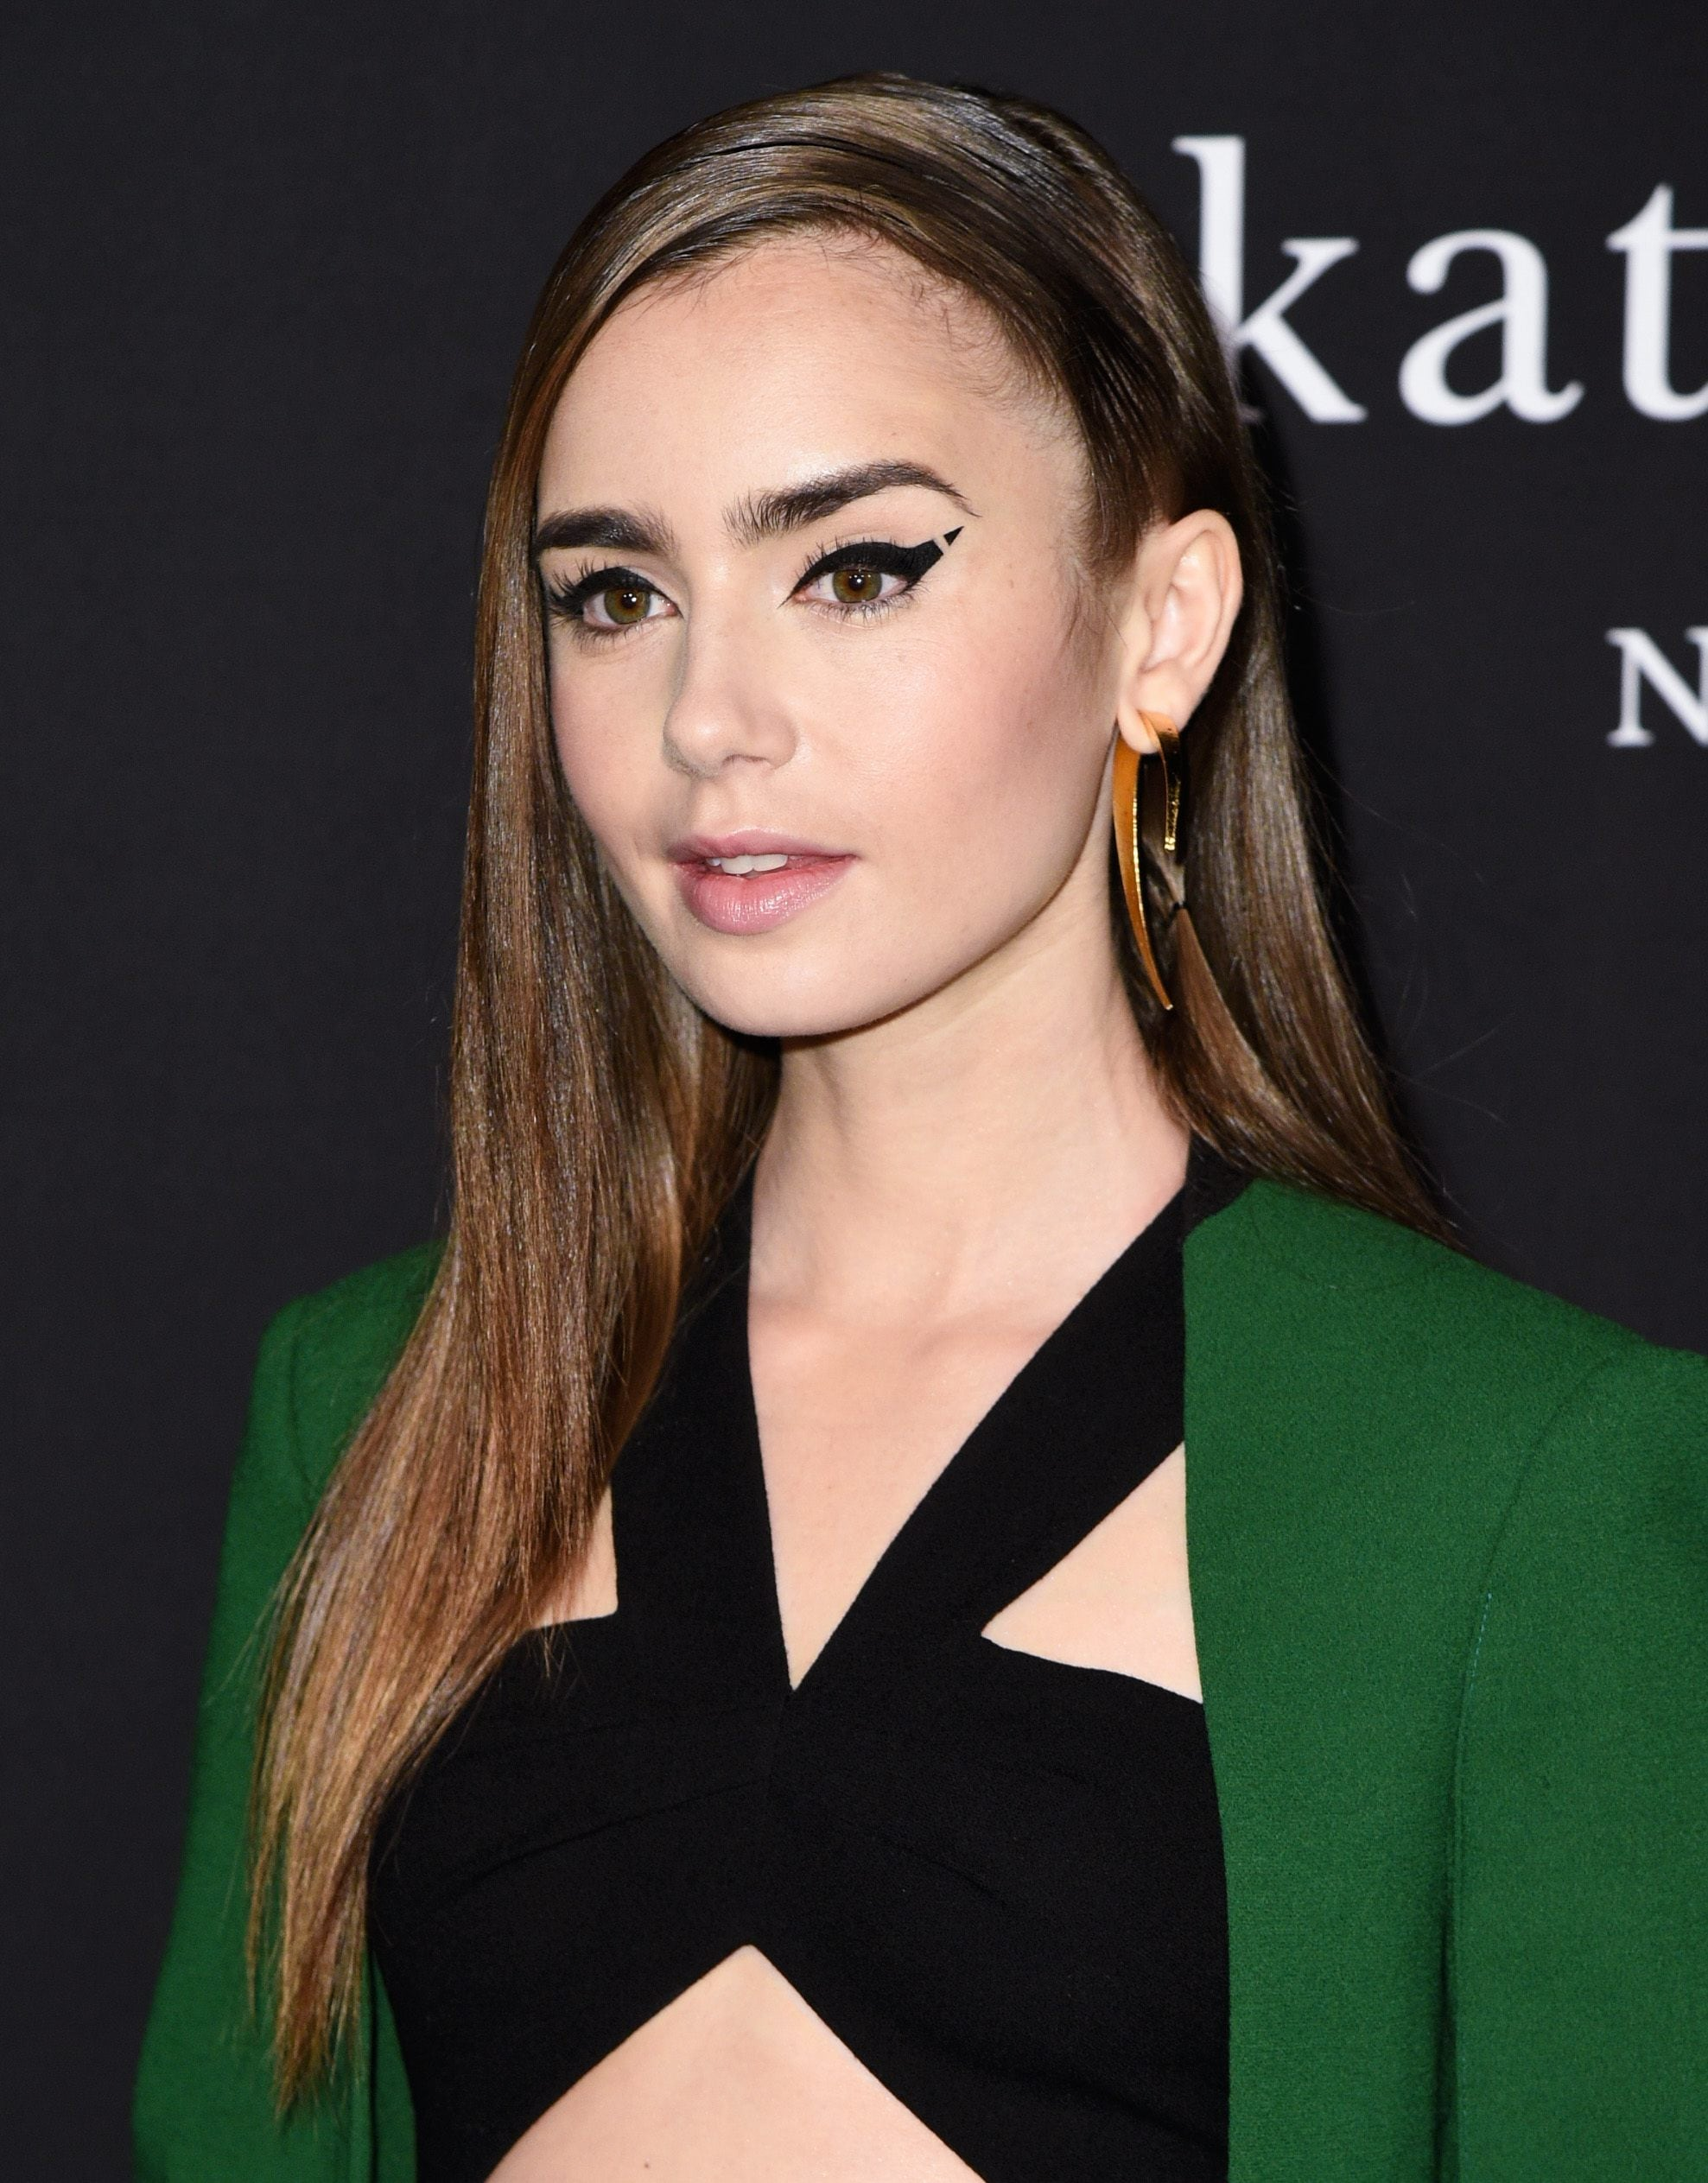 Side hairstyles: Lily Collins with long brunette hair swept over to one side with a deep set side parting, wearing a black cut out top and green blazer